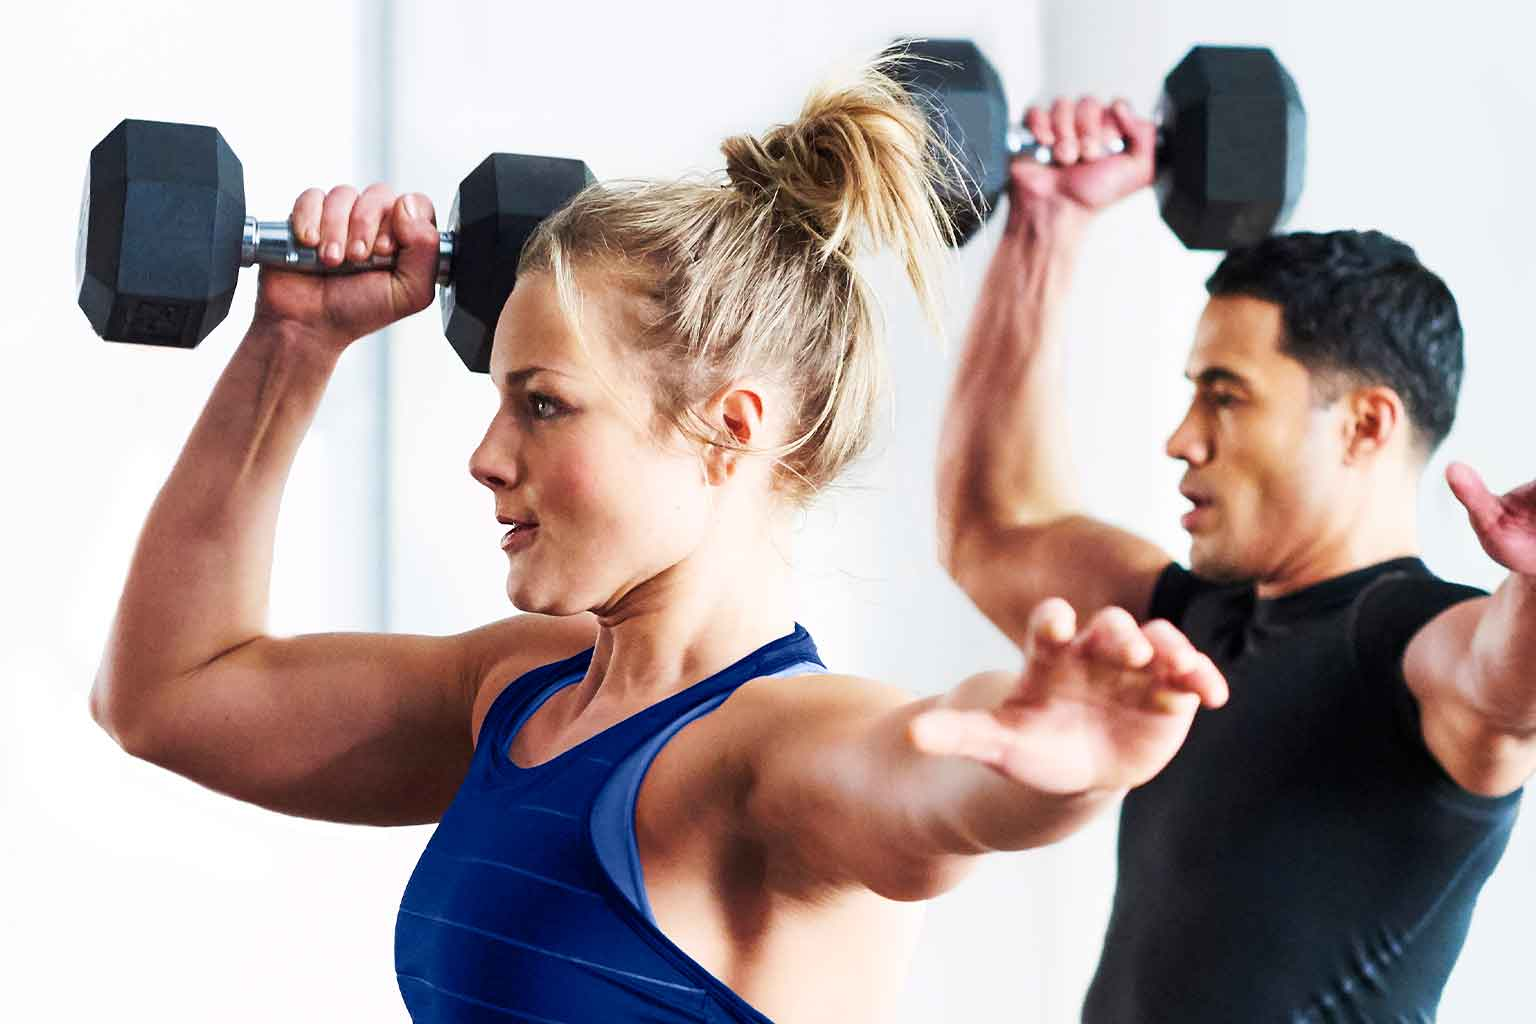 A woman in the midst of a overhead tricep extension, where her elbows are directly above her head, while she's holding two dumbbells behind her head.